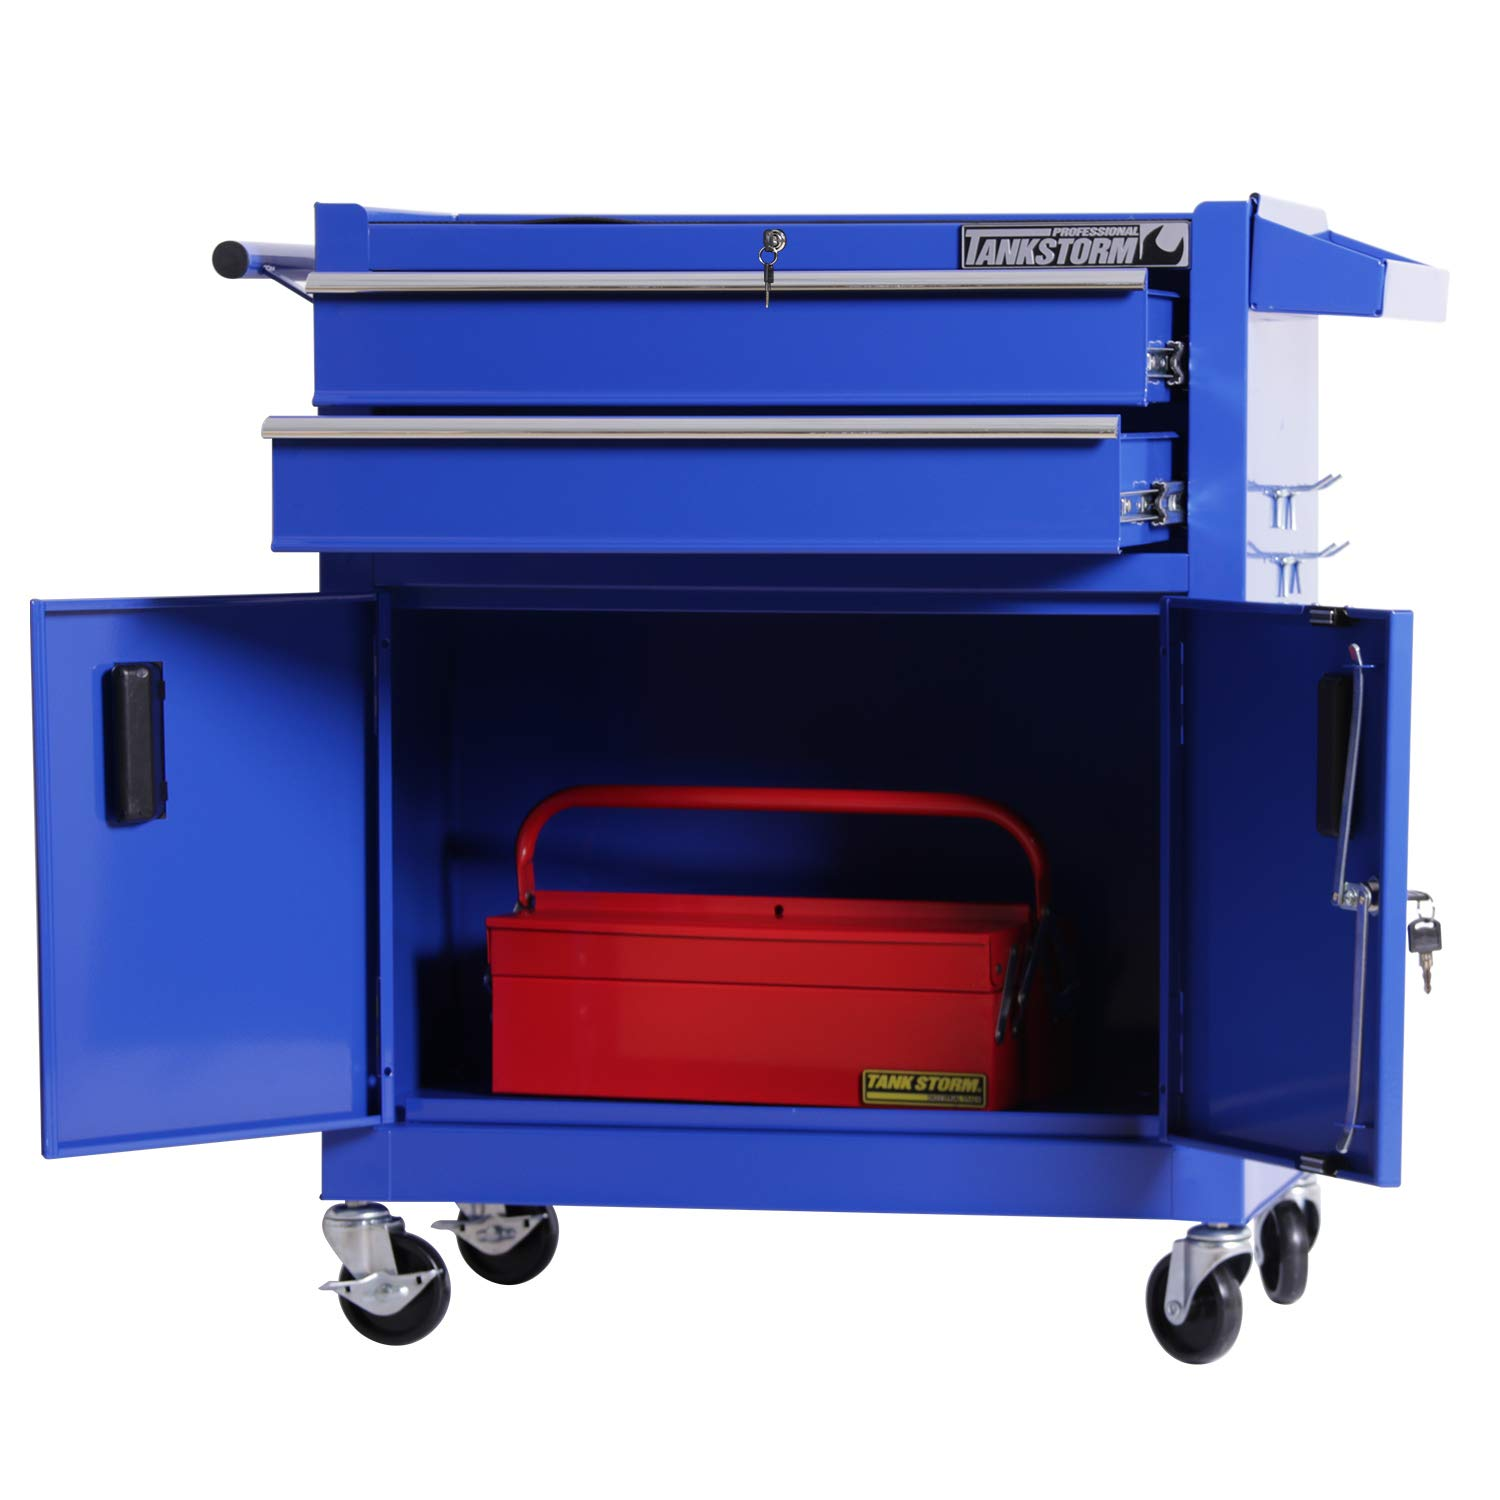 TANKSTORM Tool Chest Heavy Duty Cart Steel Rolling Tool Box with Lockable Drawers and Doors (TZ12A Blue) by TANKSTORM (Image #3)